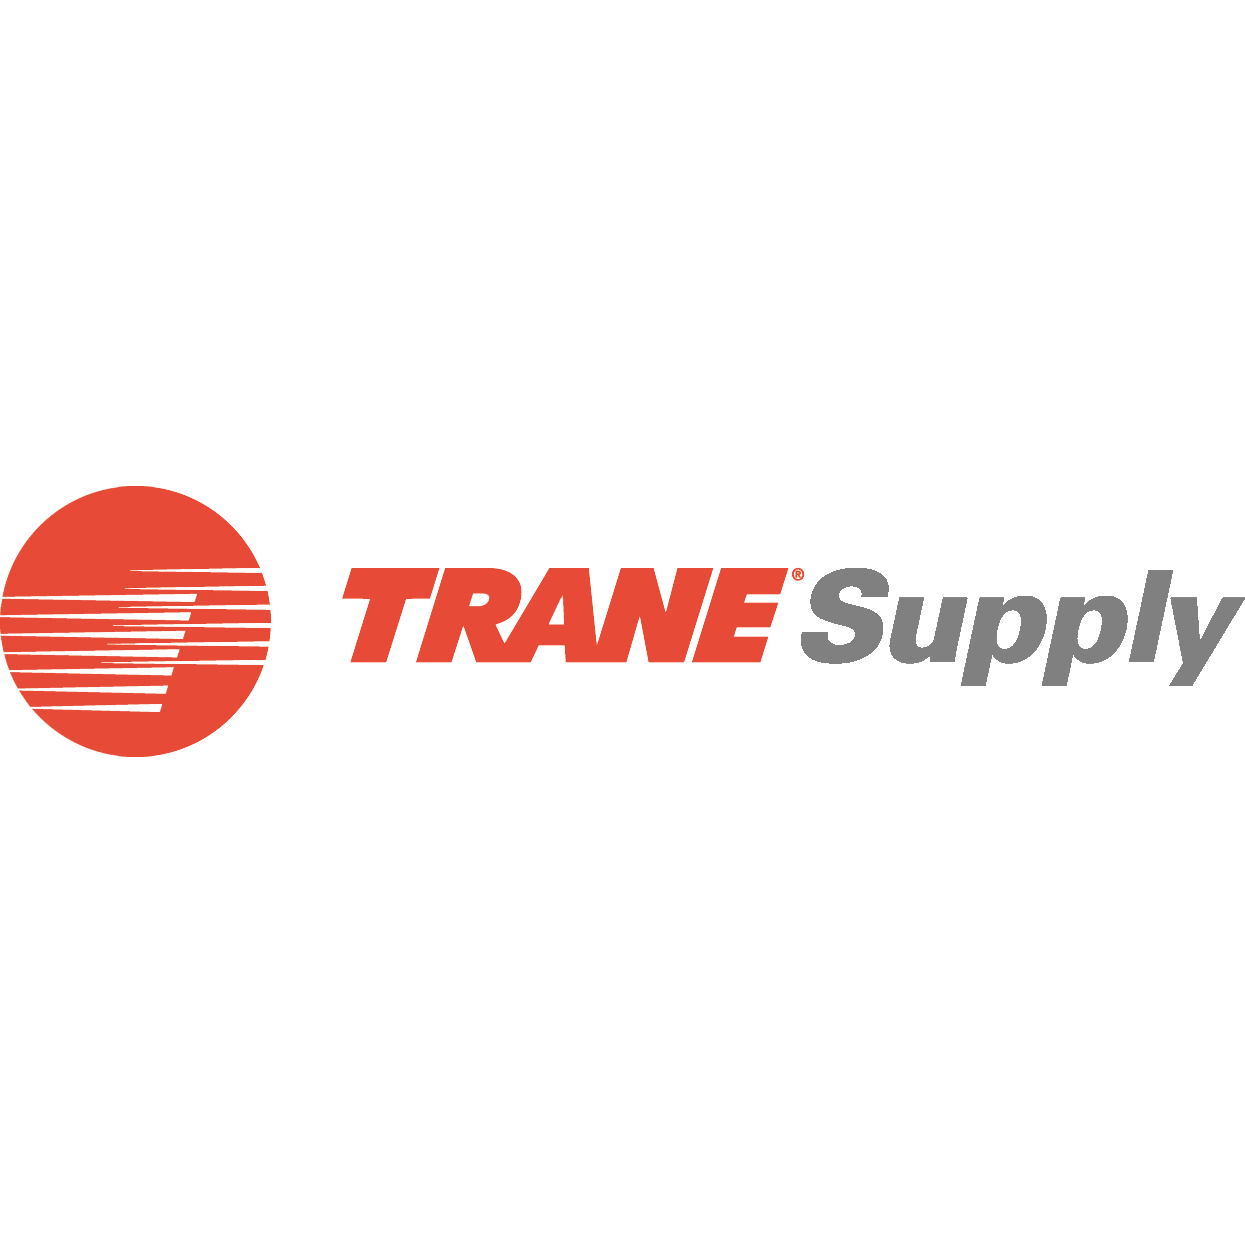 Trane Supply - Calgary, AB T2C 1G8 - (403)450-4919 | ShowMeLocal.com